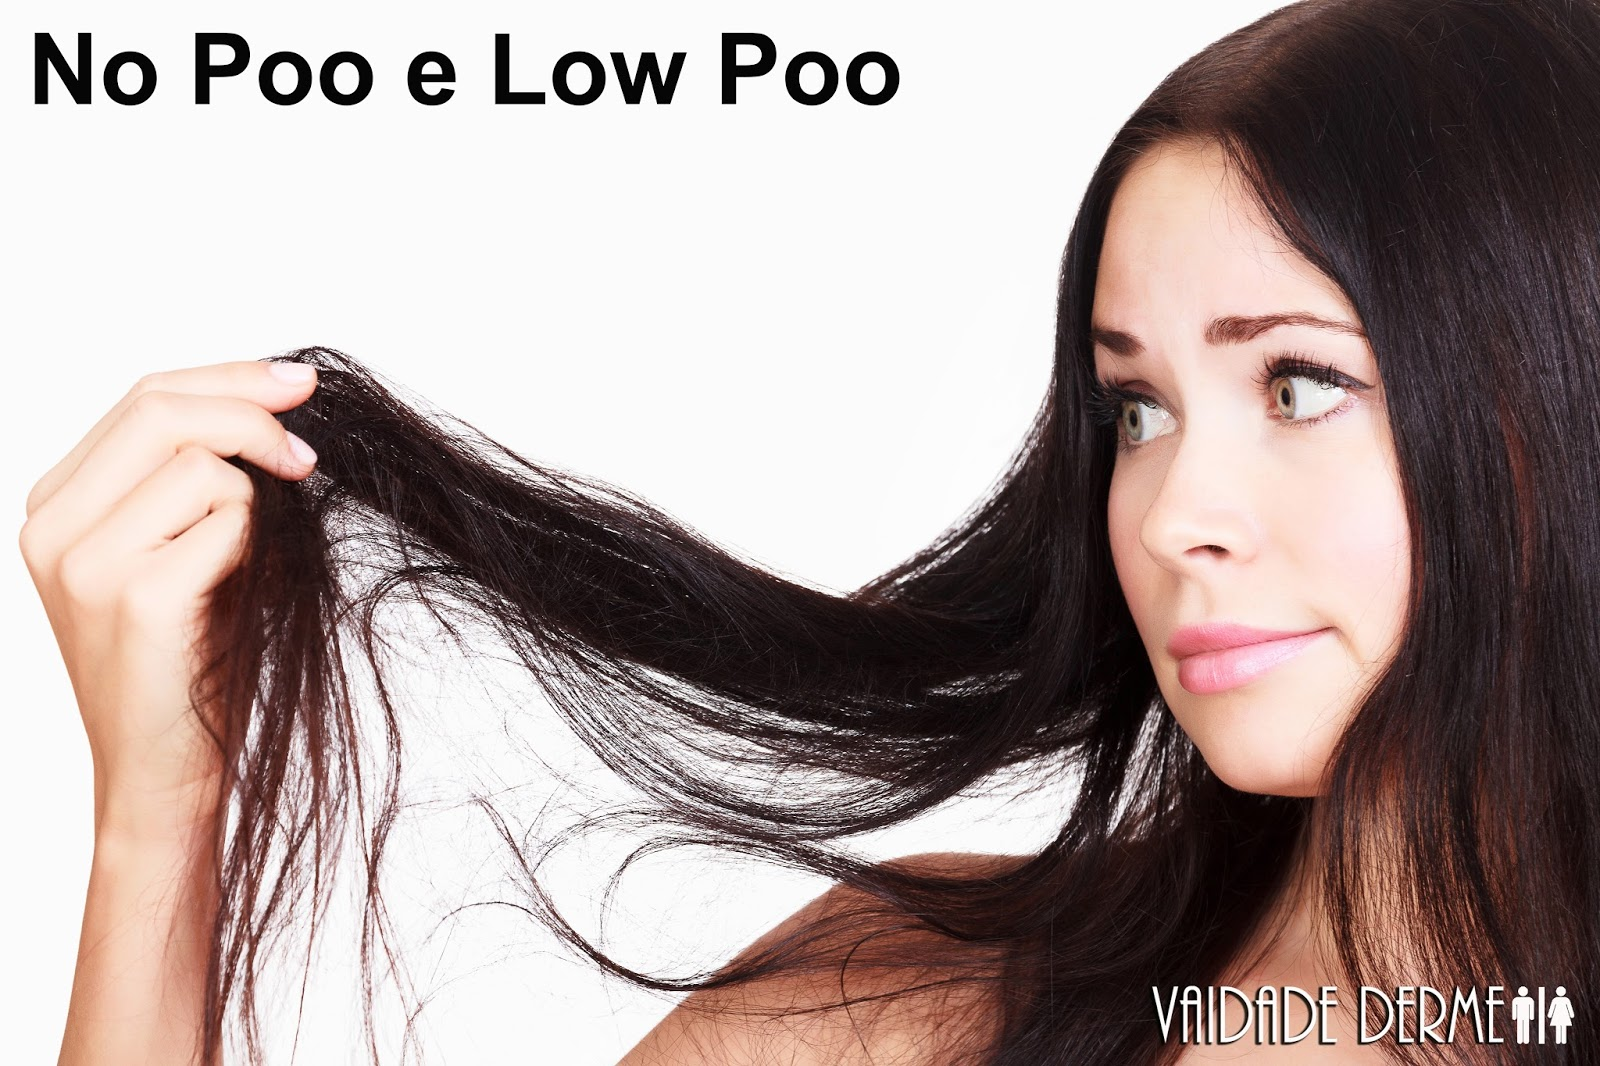 No Poo e Low Poo